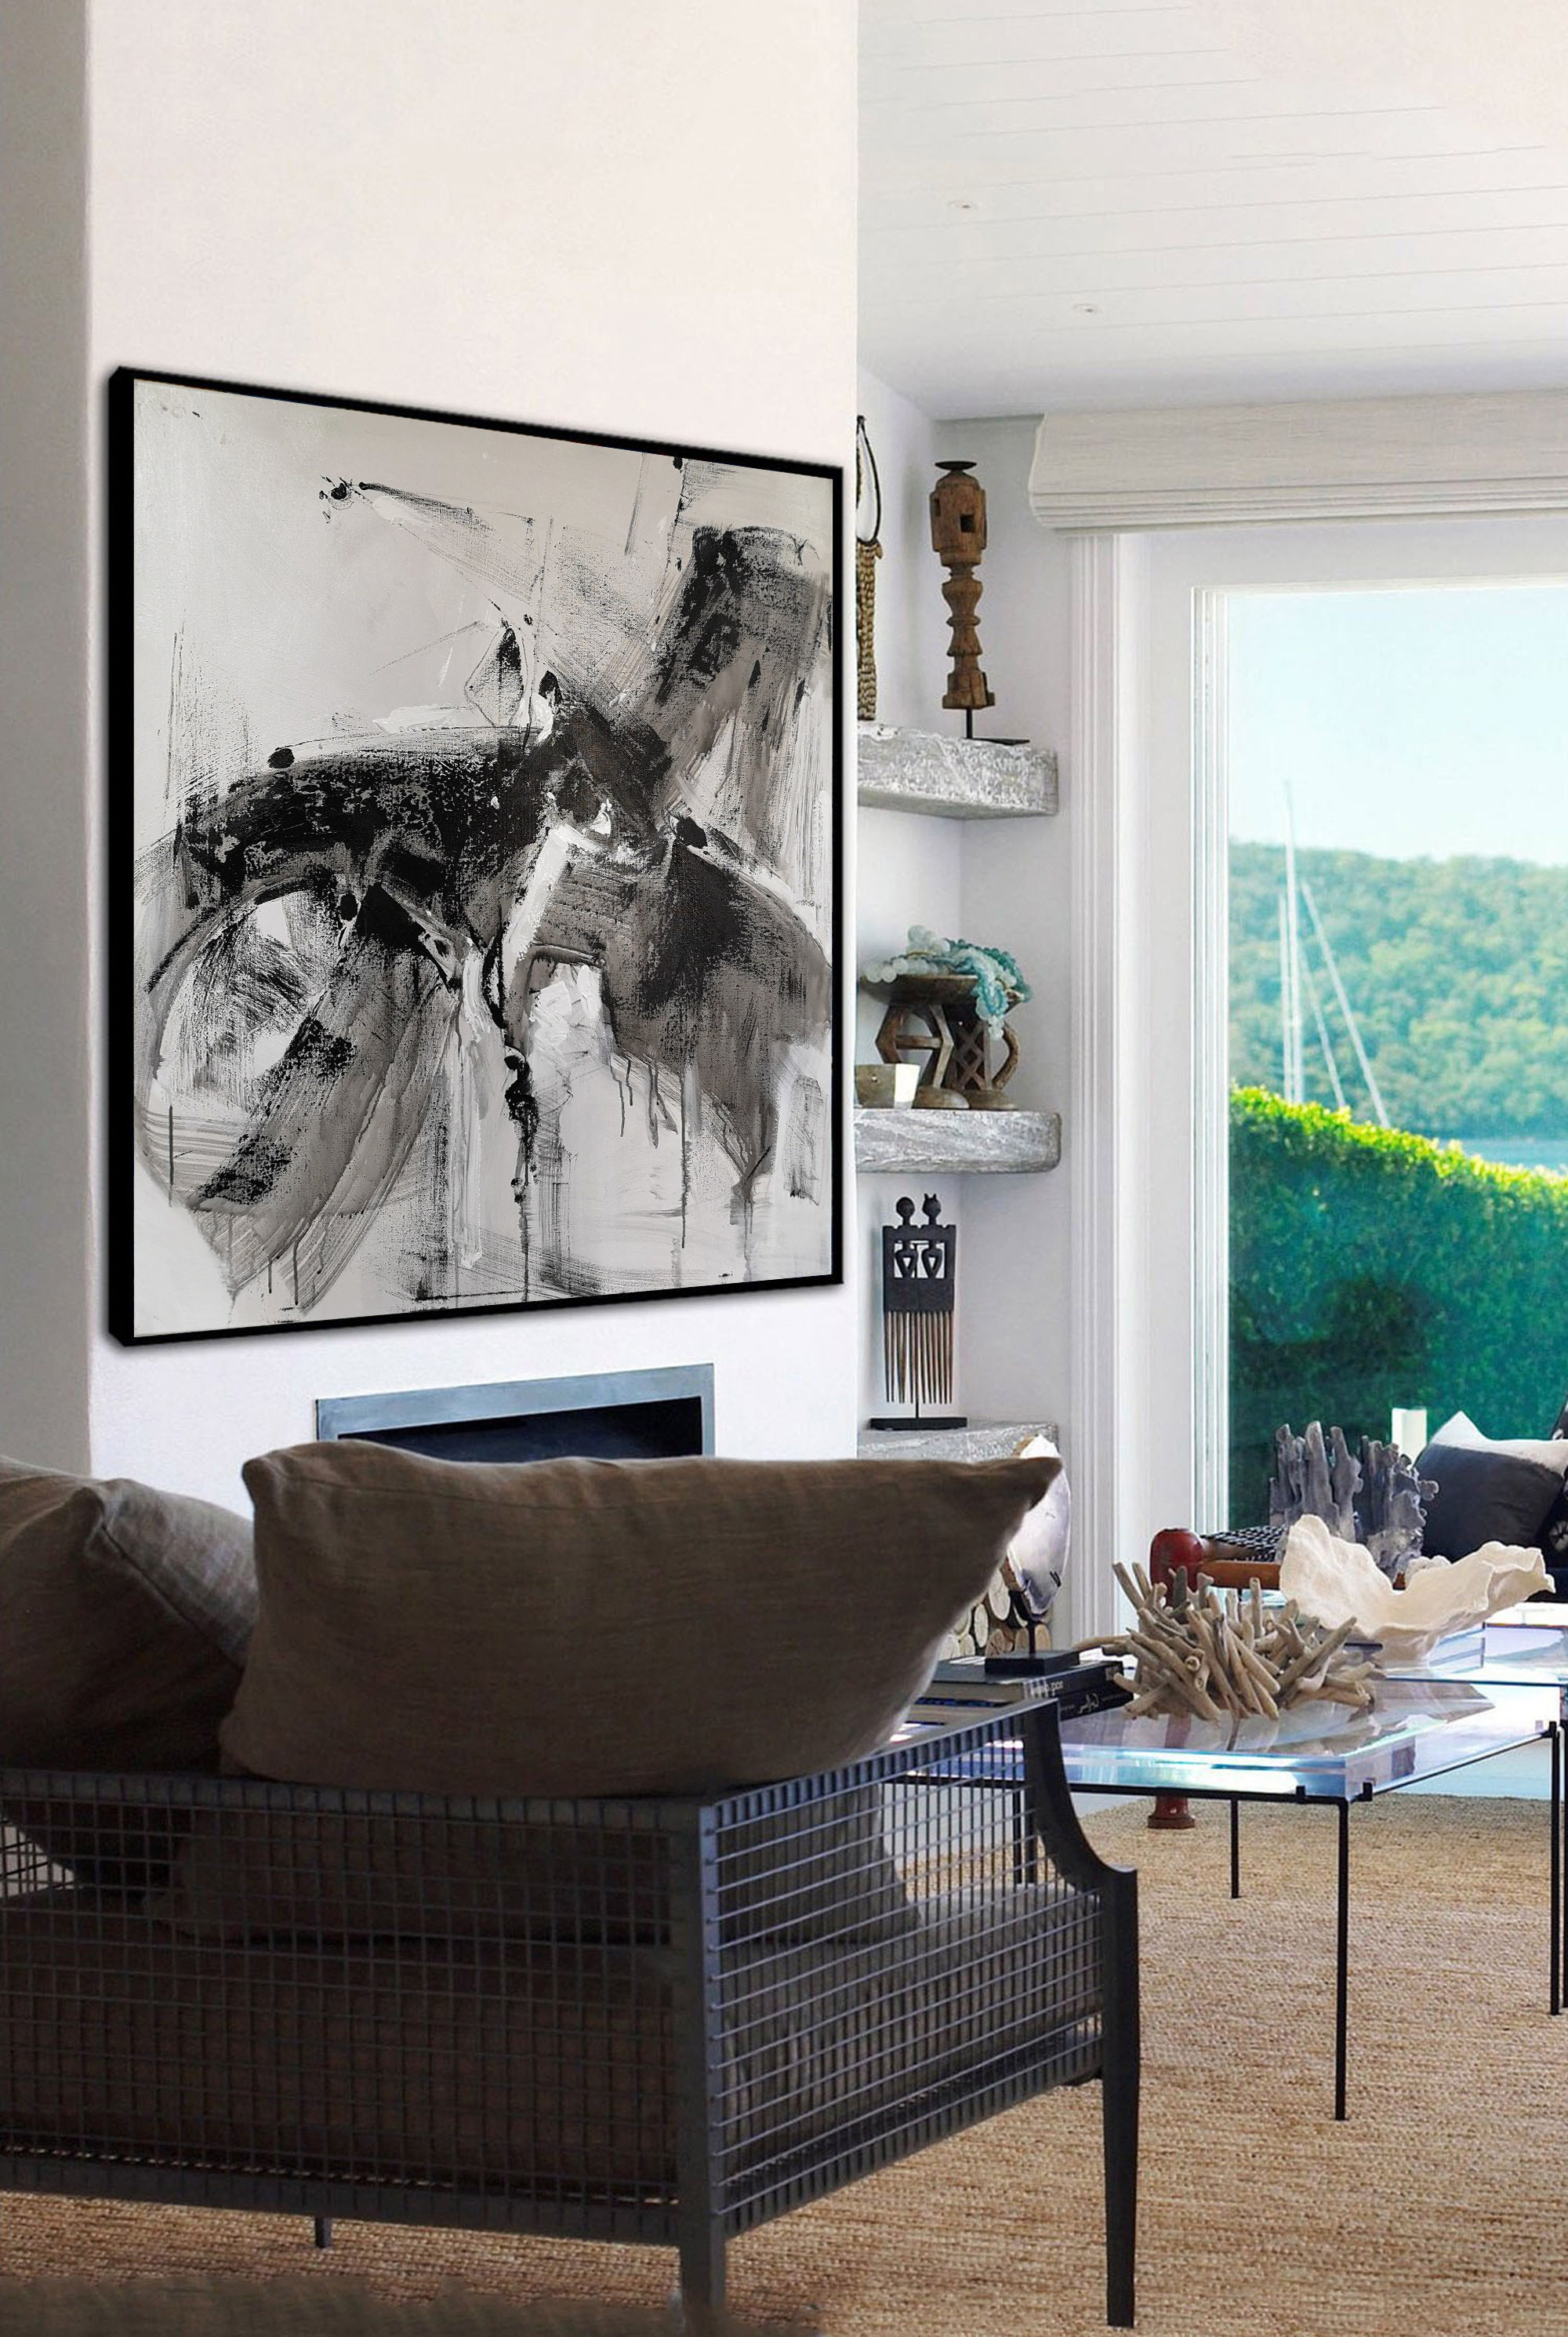 Large Abstract Painting Canvas Oil Painting Abstract Black And White Wall Oil Painting Original Abstract Large Wall Decor for Living Room